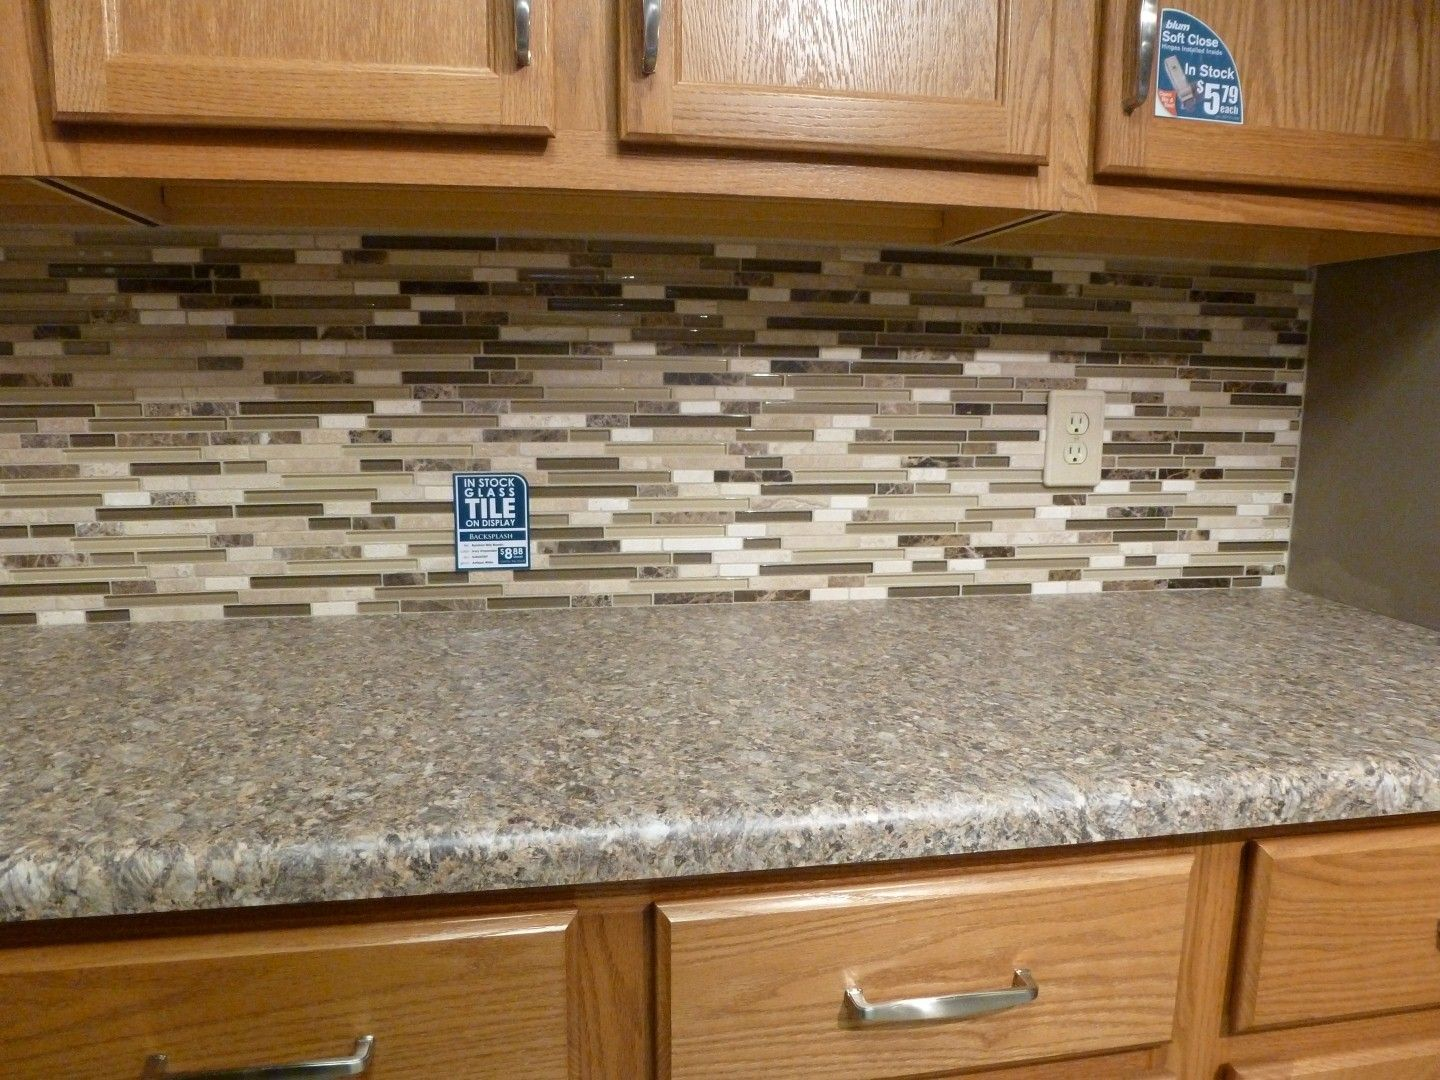 Mosaic Kitchen Tile Backsplash Ideas  BayTownKitchen TILE - Mosaic kitchen tiles for backsplash